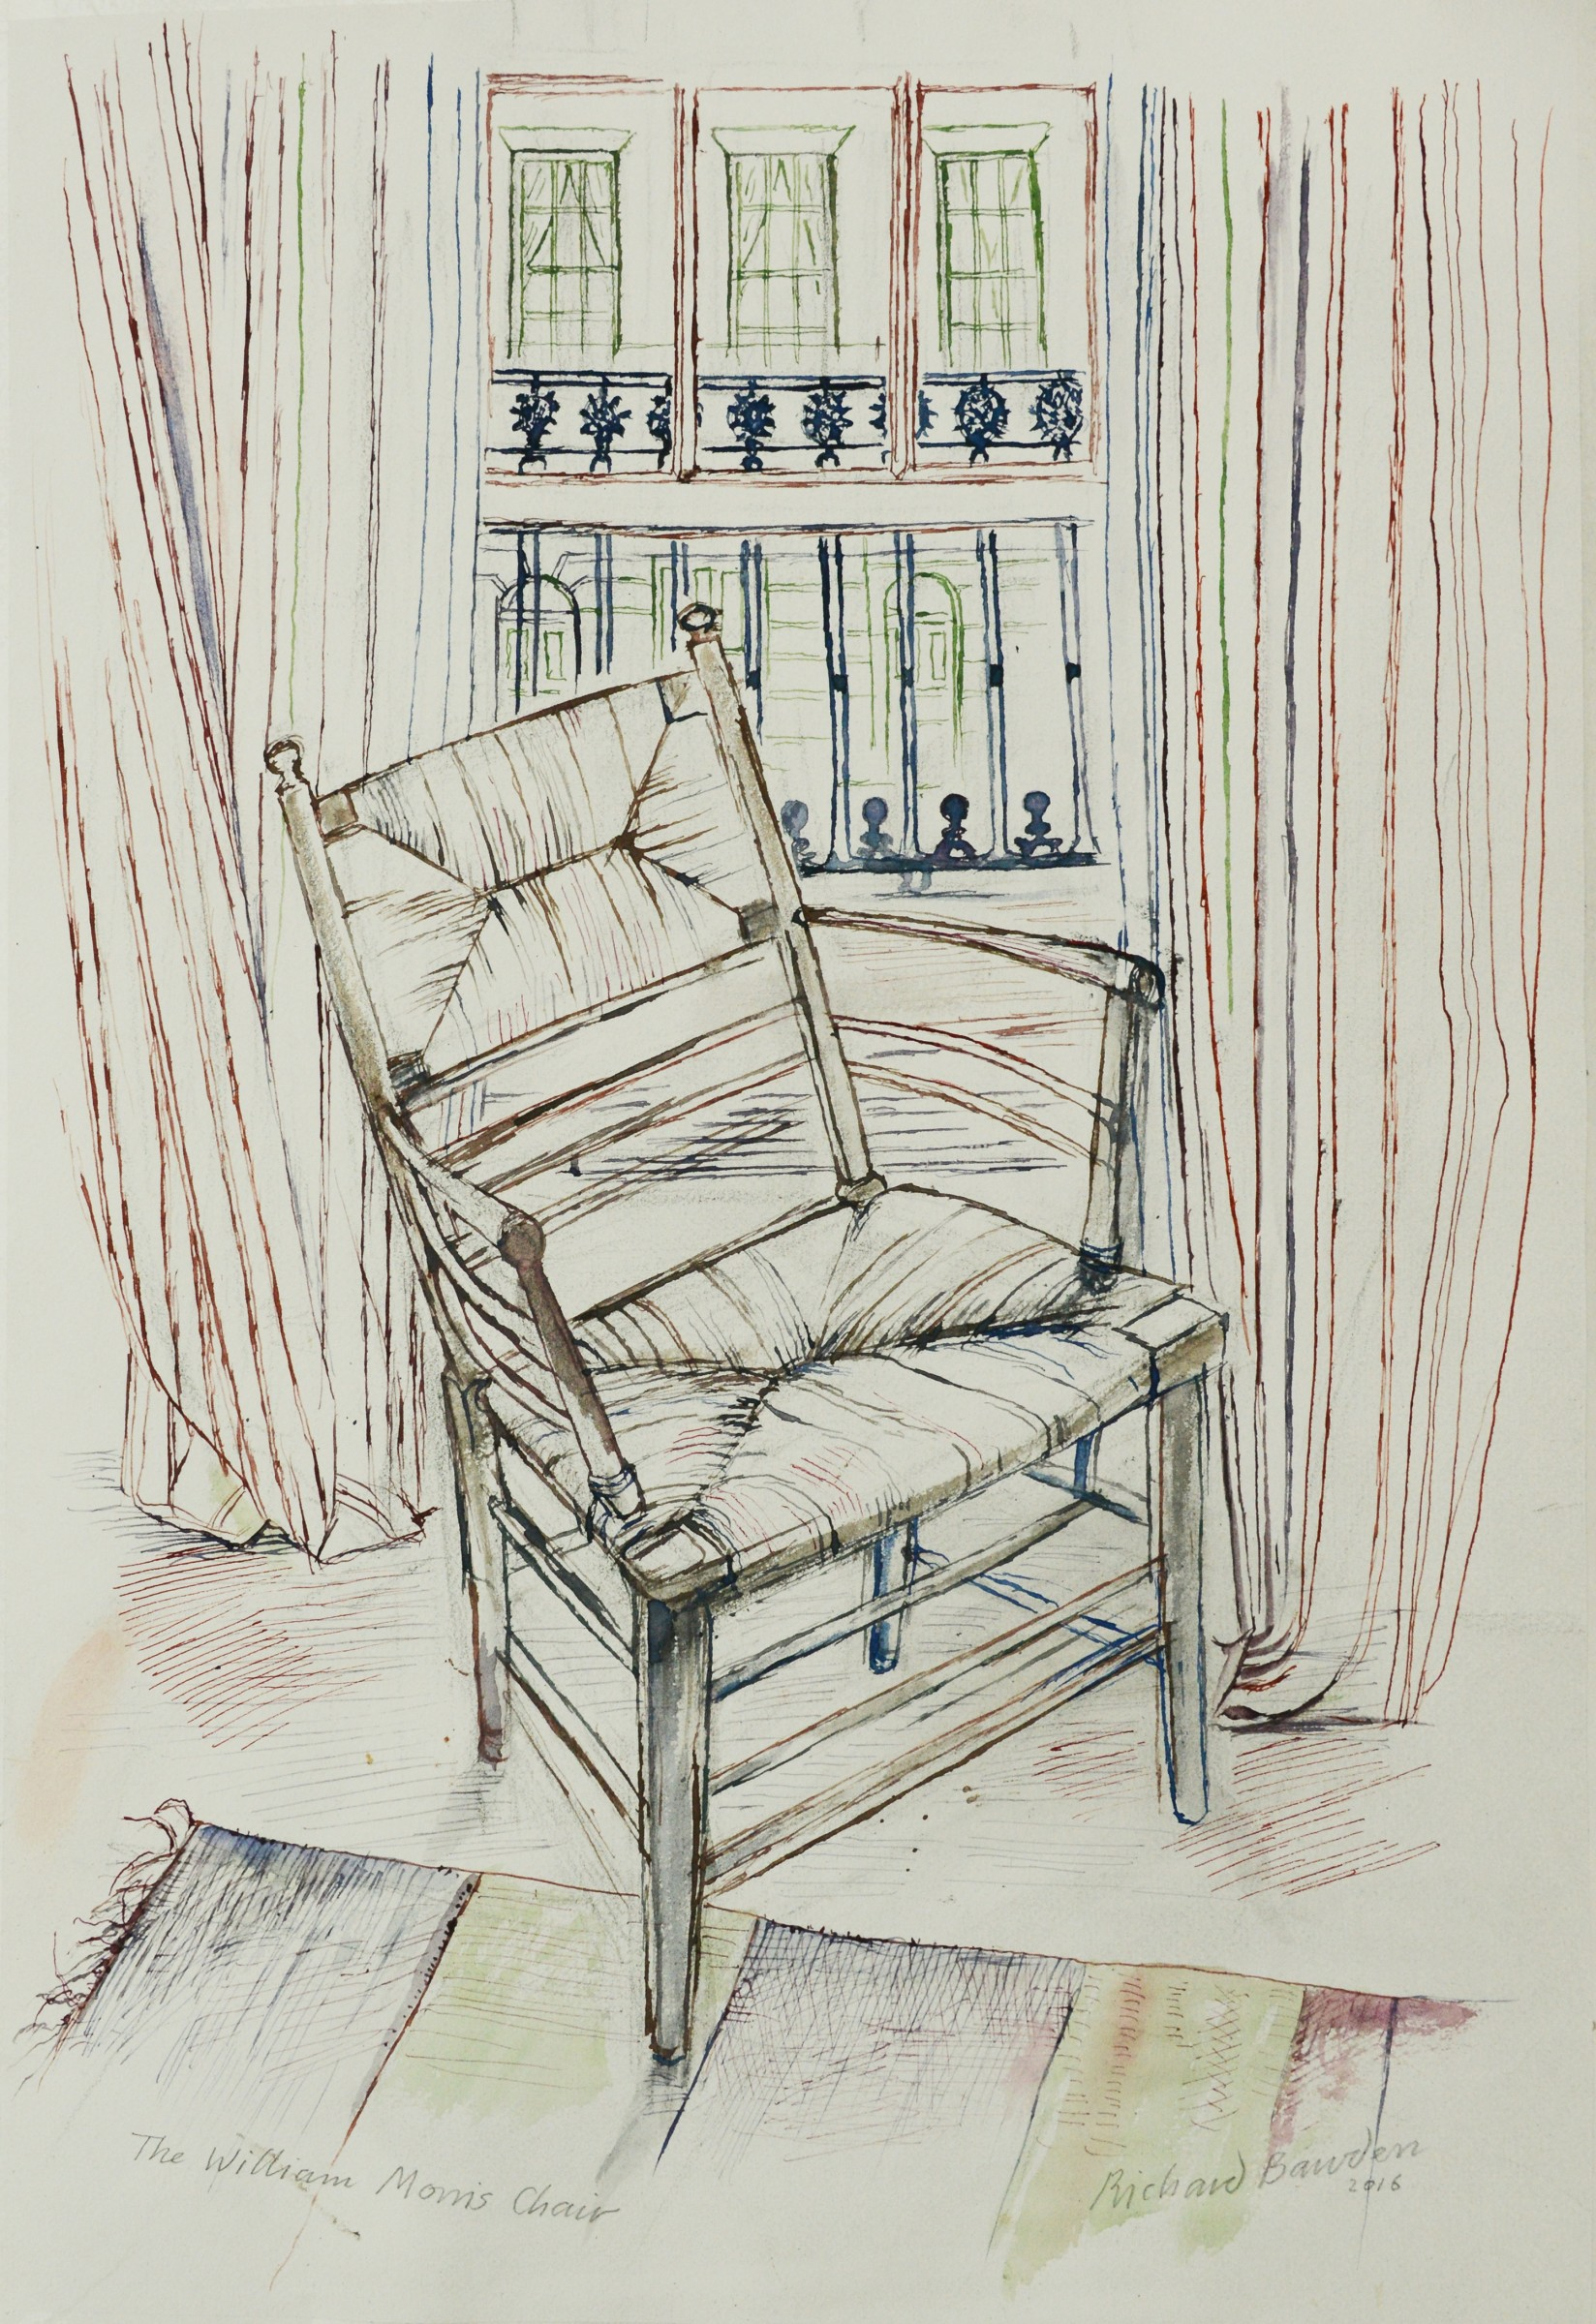 <span class=&#34;link fancybox-details-link&#34;><a href=&#34;/artists/38-richard-bawden/works/9964-richard-bawden-the-william-morris-chair/&#34;>View Detail Page</a></span><div class=&#34;artist&#34;><span class=&#34;artist&#34;><strong>Richard Bawden</strong></span></div>